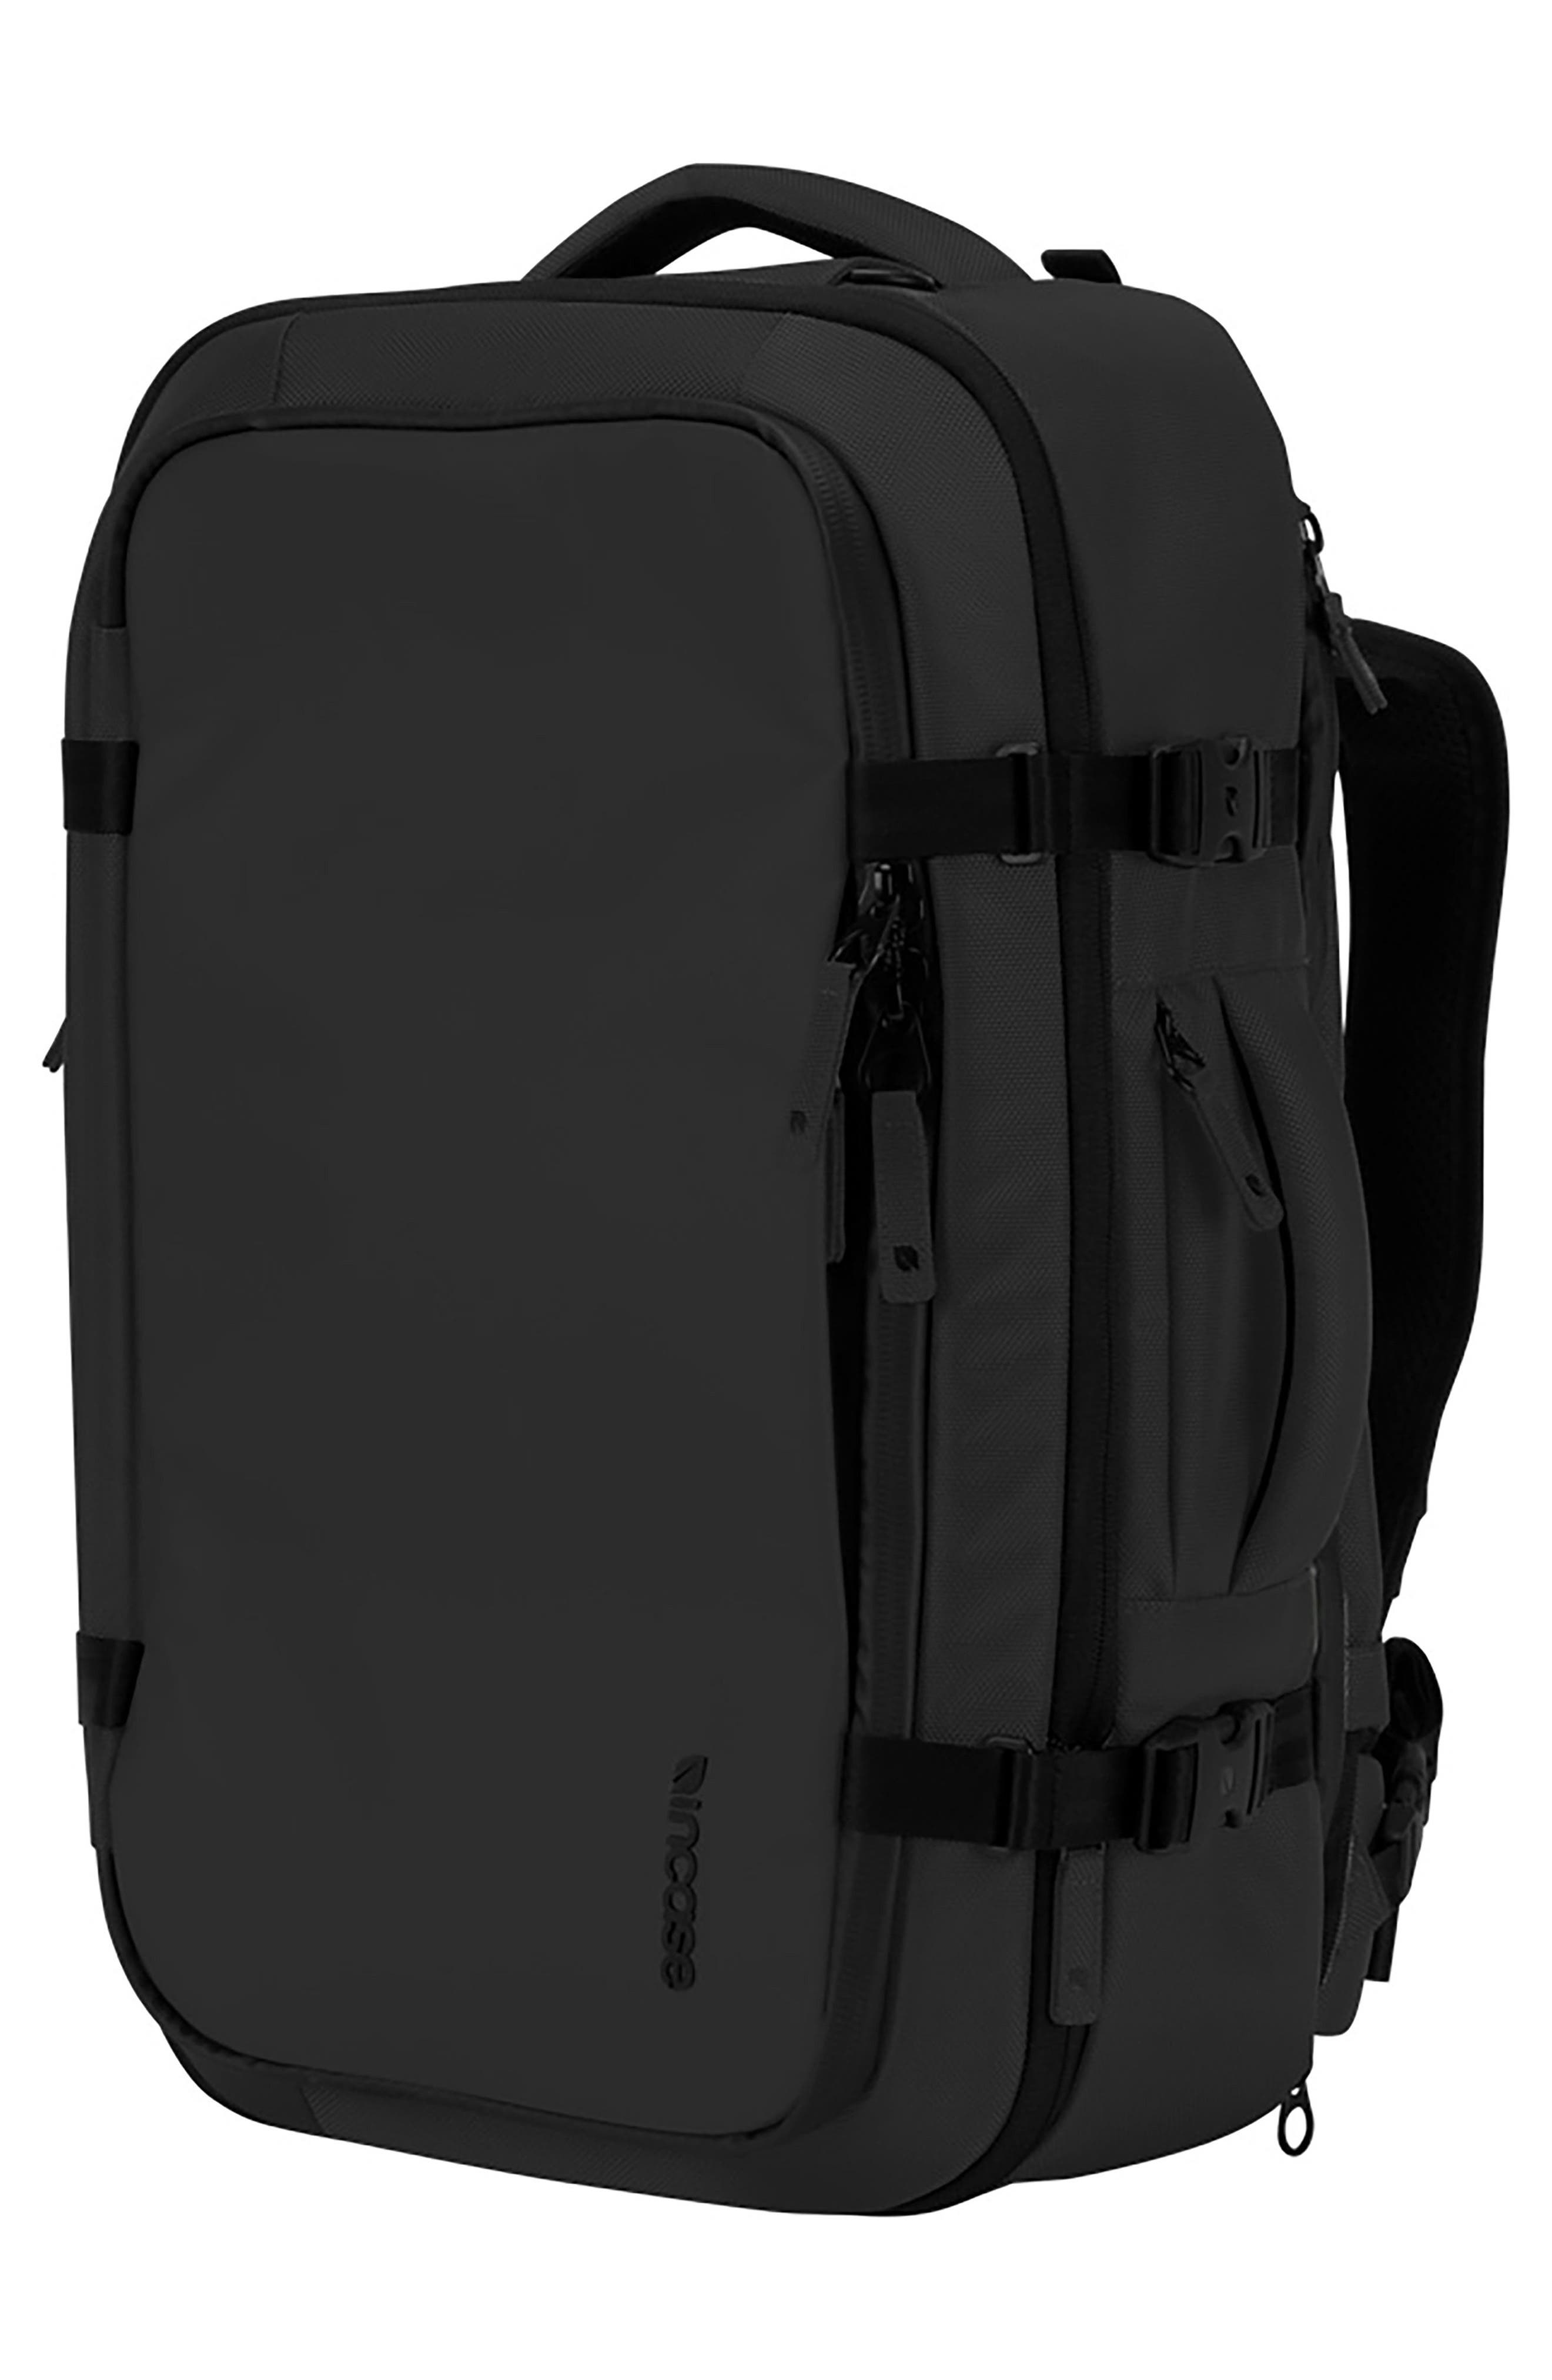 TRACTO Convertible Backpack,                             Alternate thumbnail 10, color,